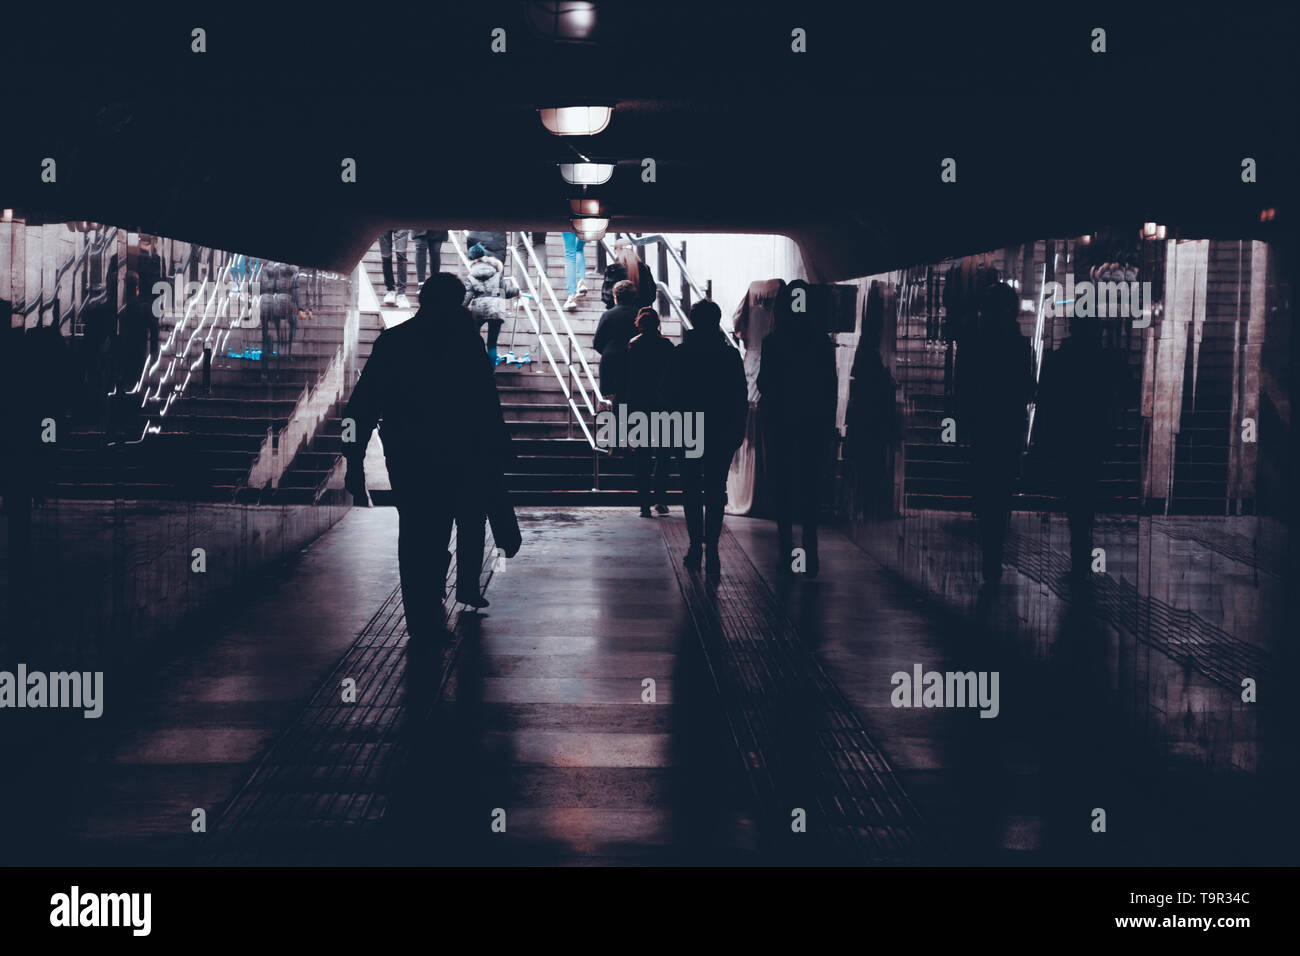 silhouettes of people in an underground pedestrian crossing - Stock Image